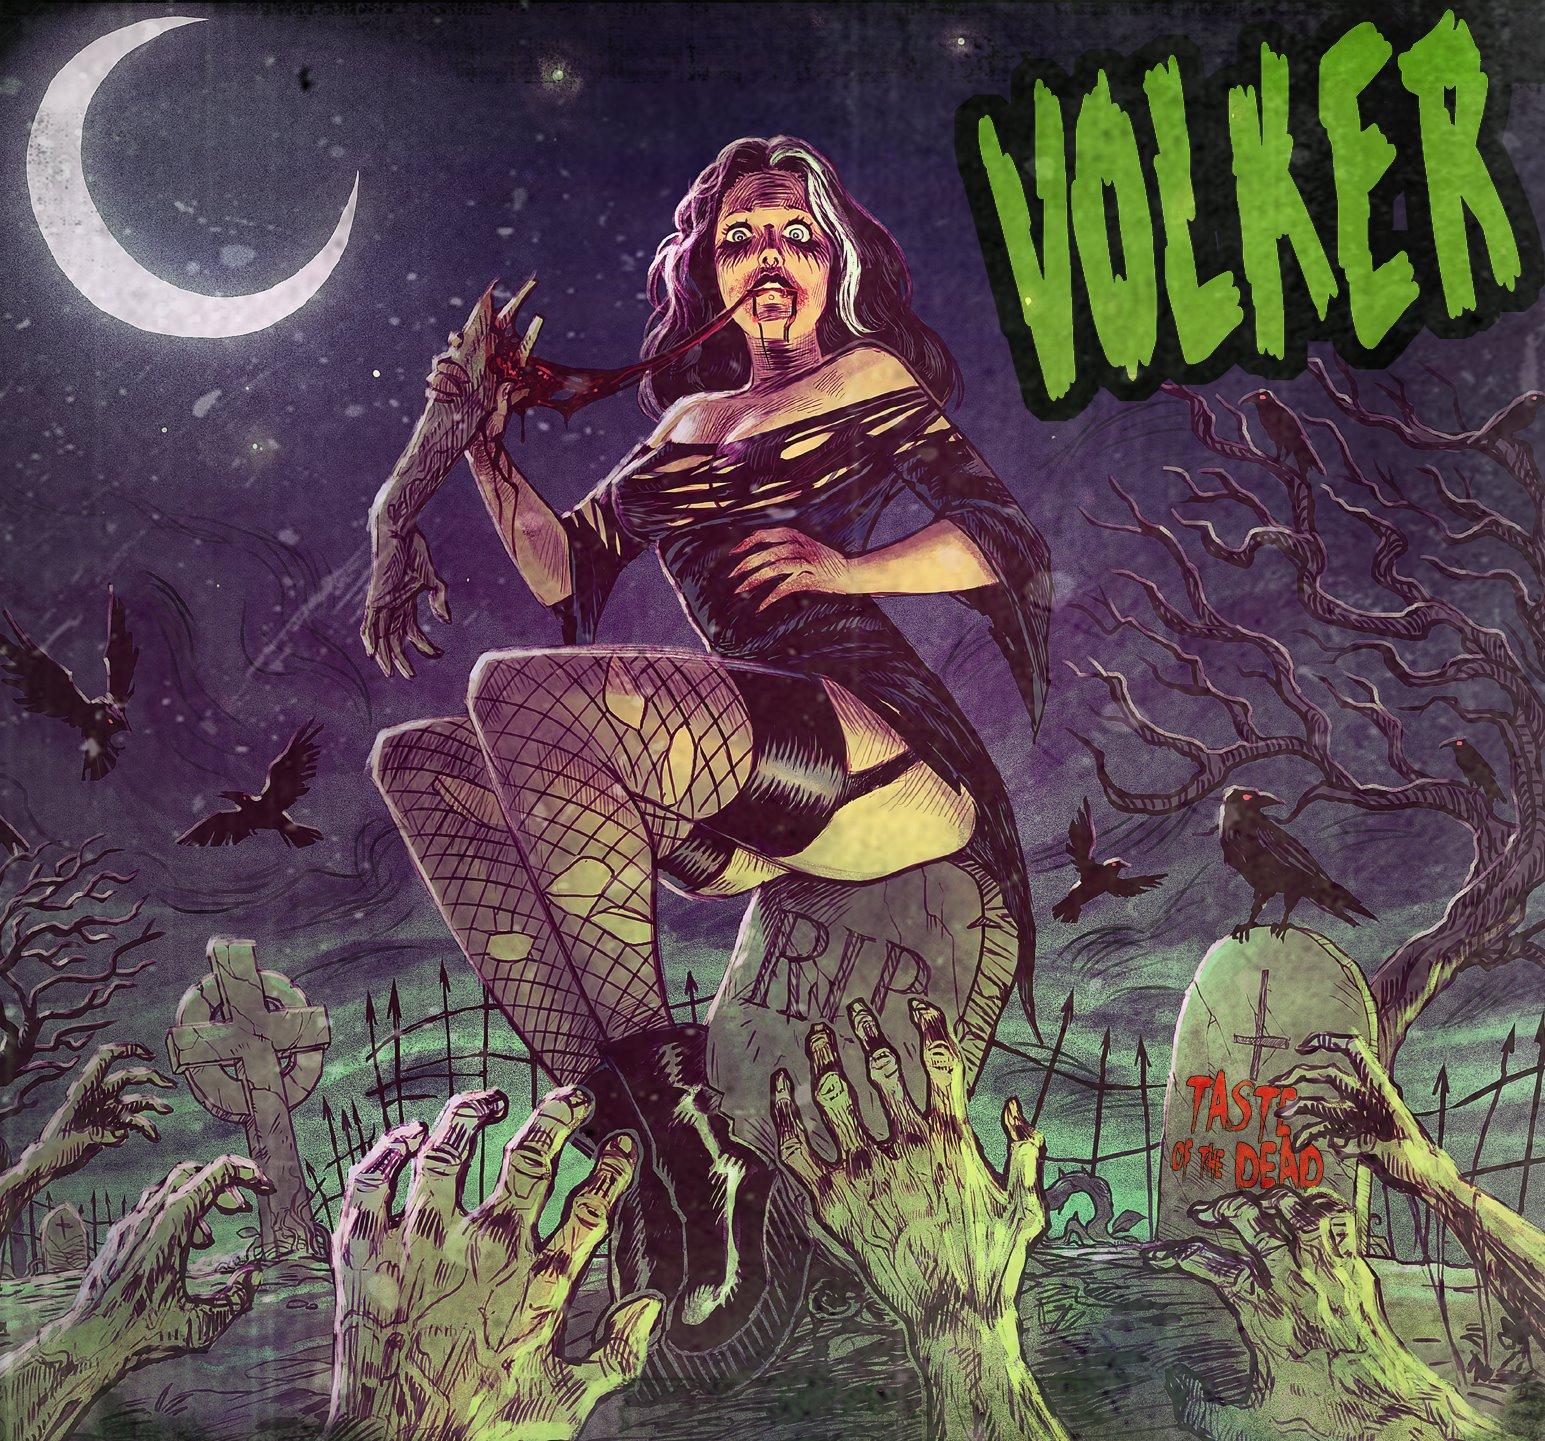 Volker – Taste Of The Dead